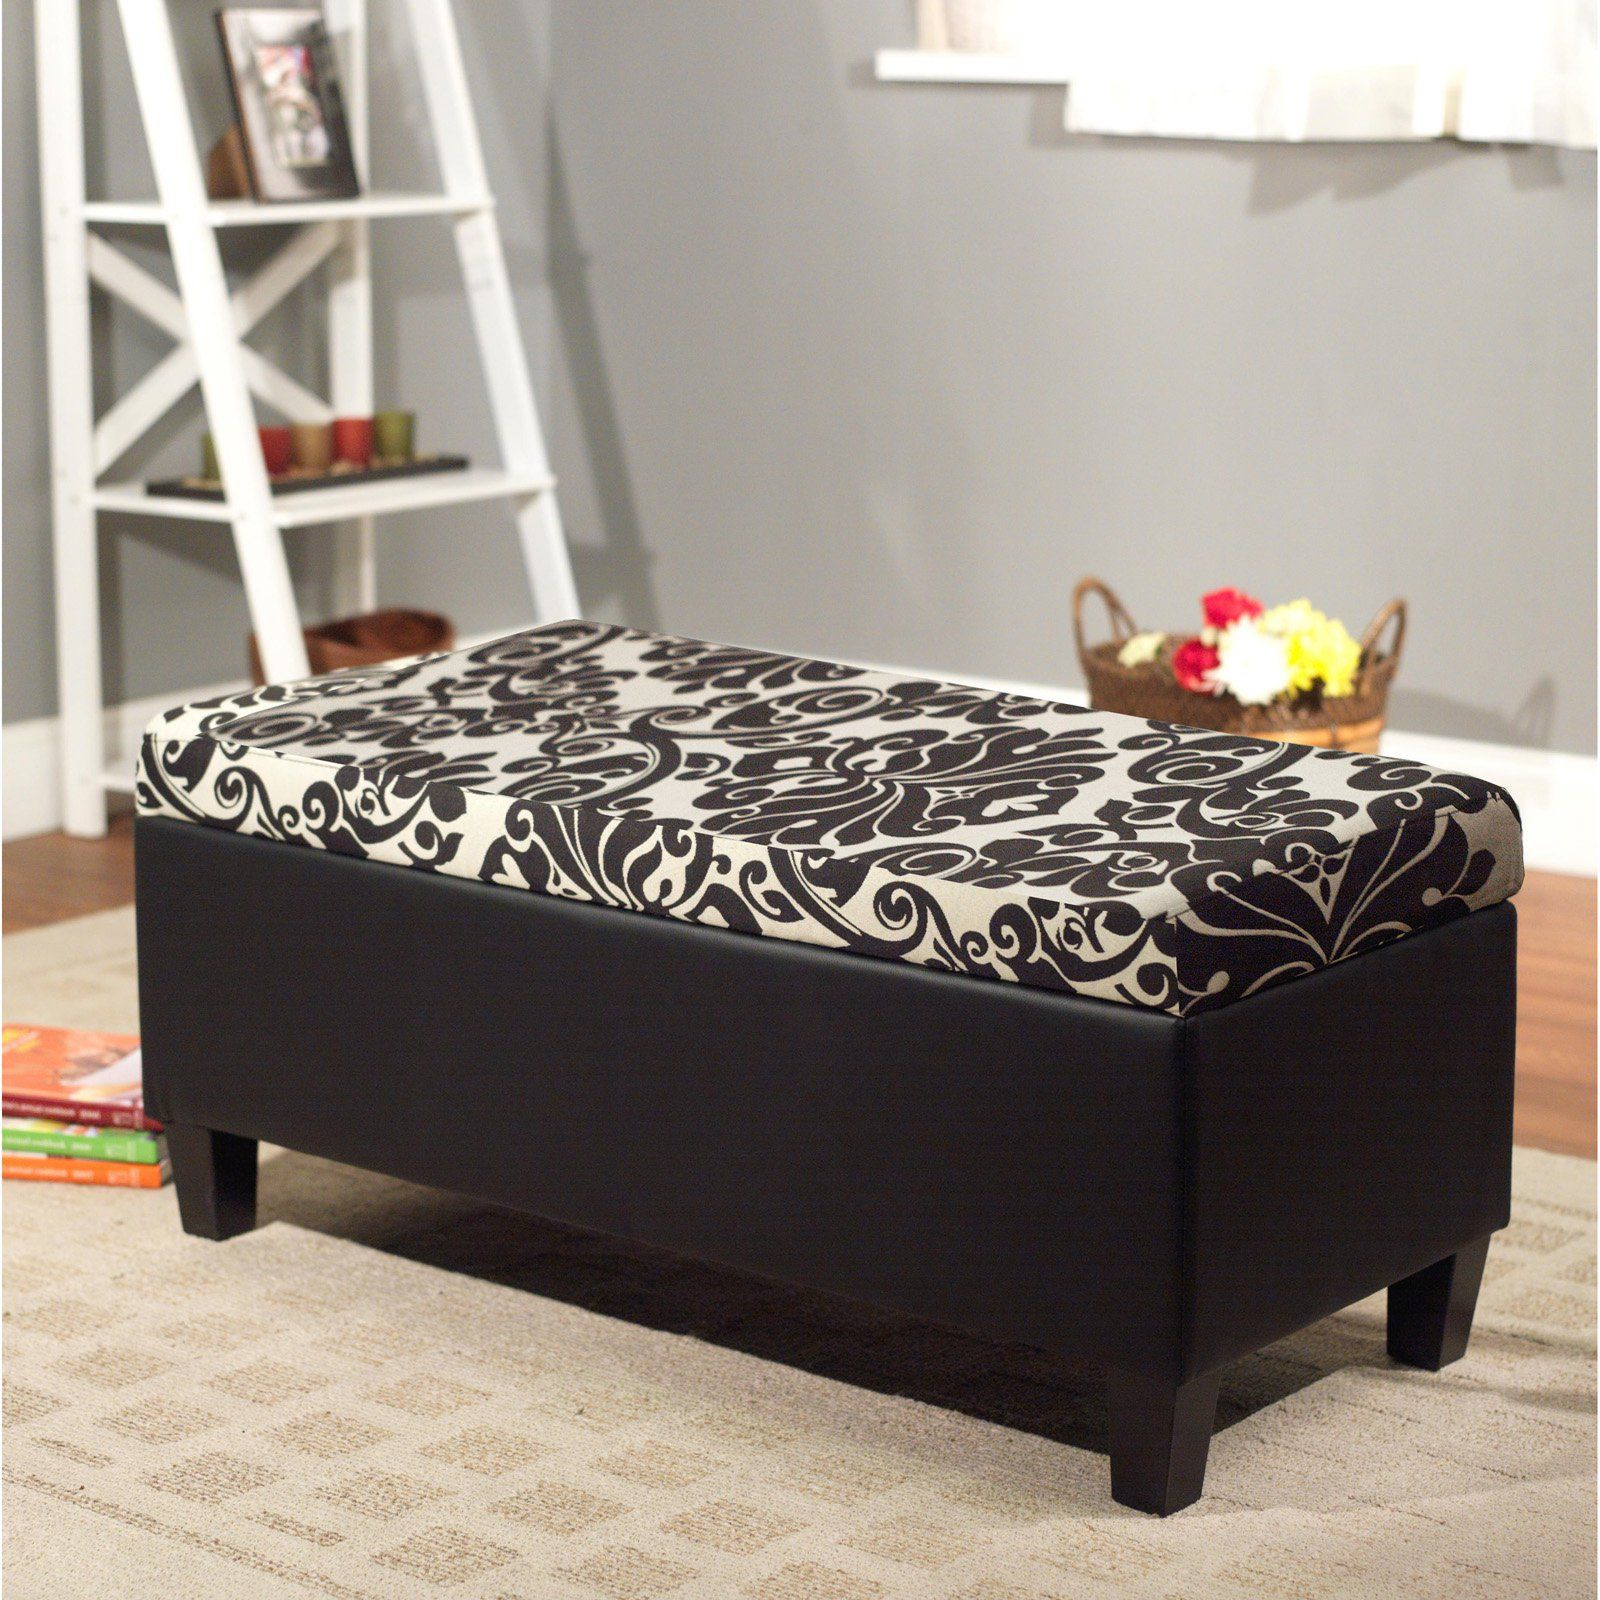 Target Marketing Systems Zoe Storage Bench | from hayneedle.com ...